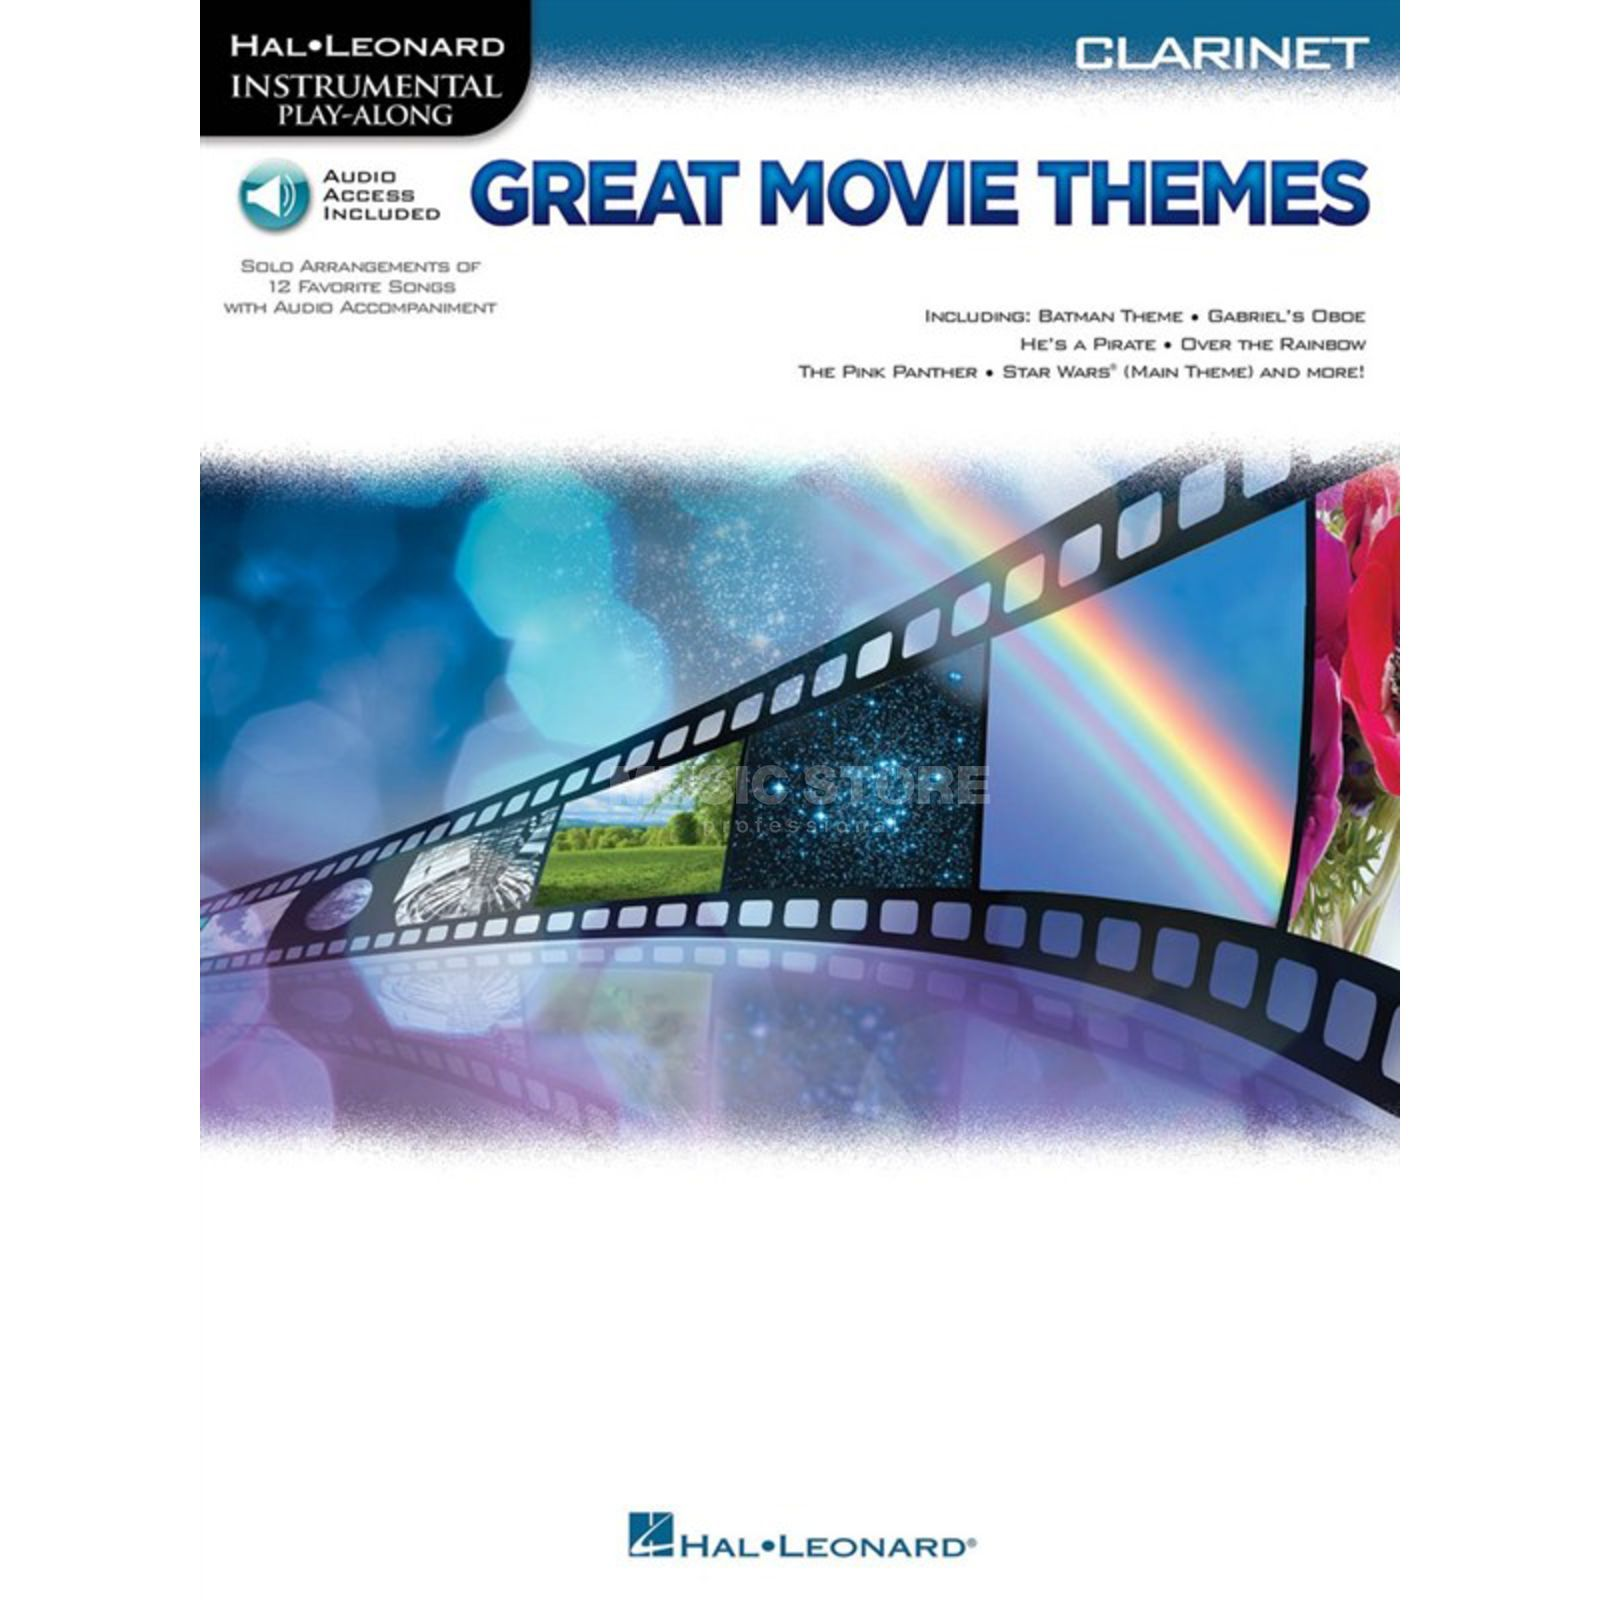 Hal Leonard Instrumental Play-Along: Great Movie Themes - Clarinet Produktbild